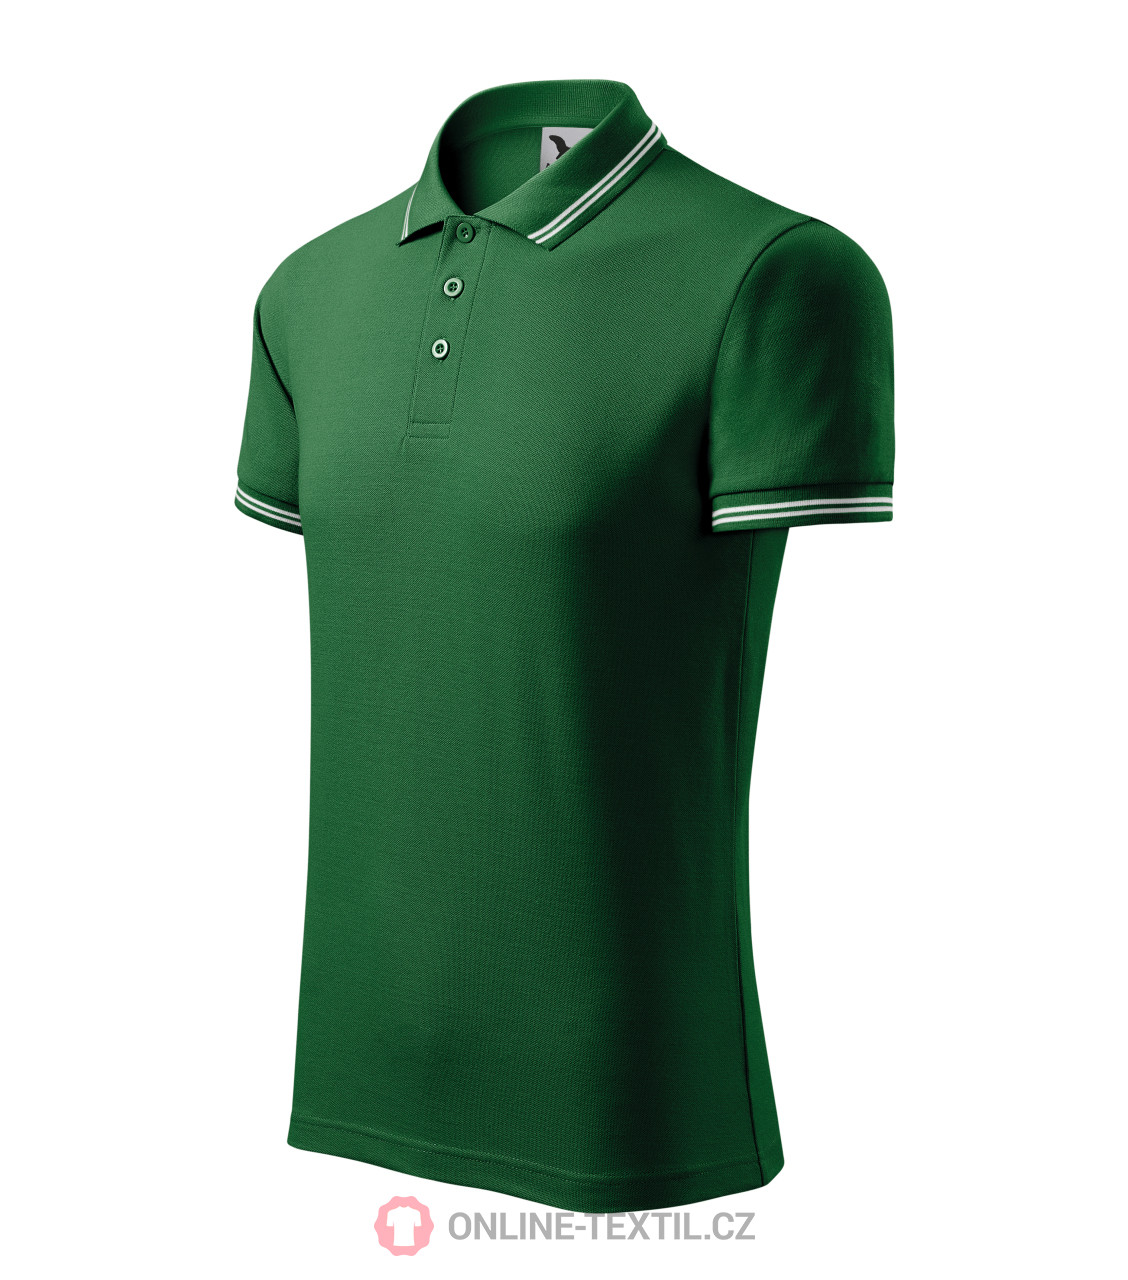 CLASSIC RUGBY STRIPE POLO SHIRT LONG SLEEVE MEN/'S LIGHTER WEIGHT XS-4XL